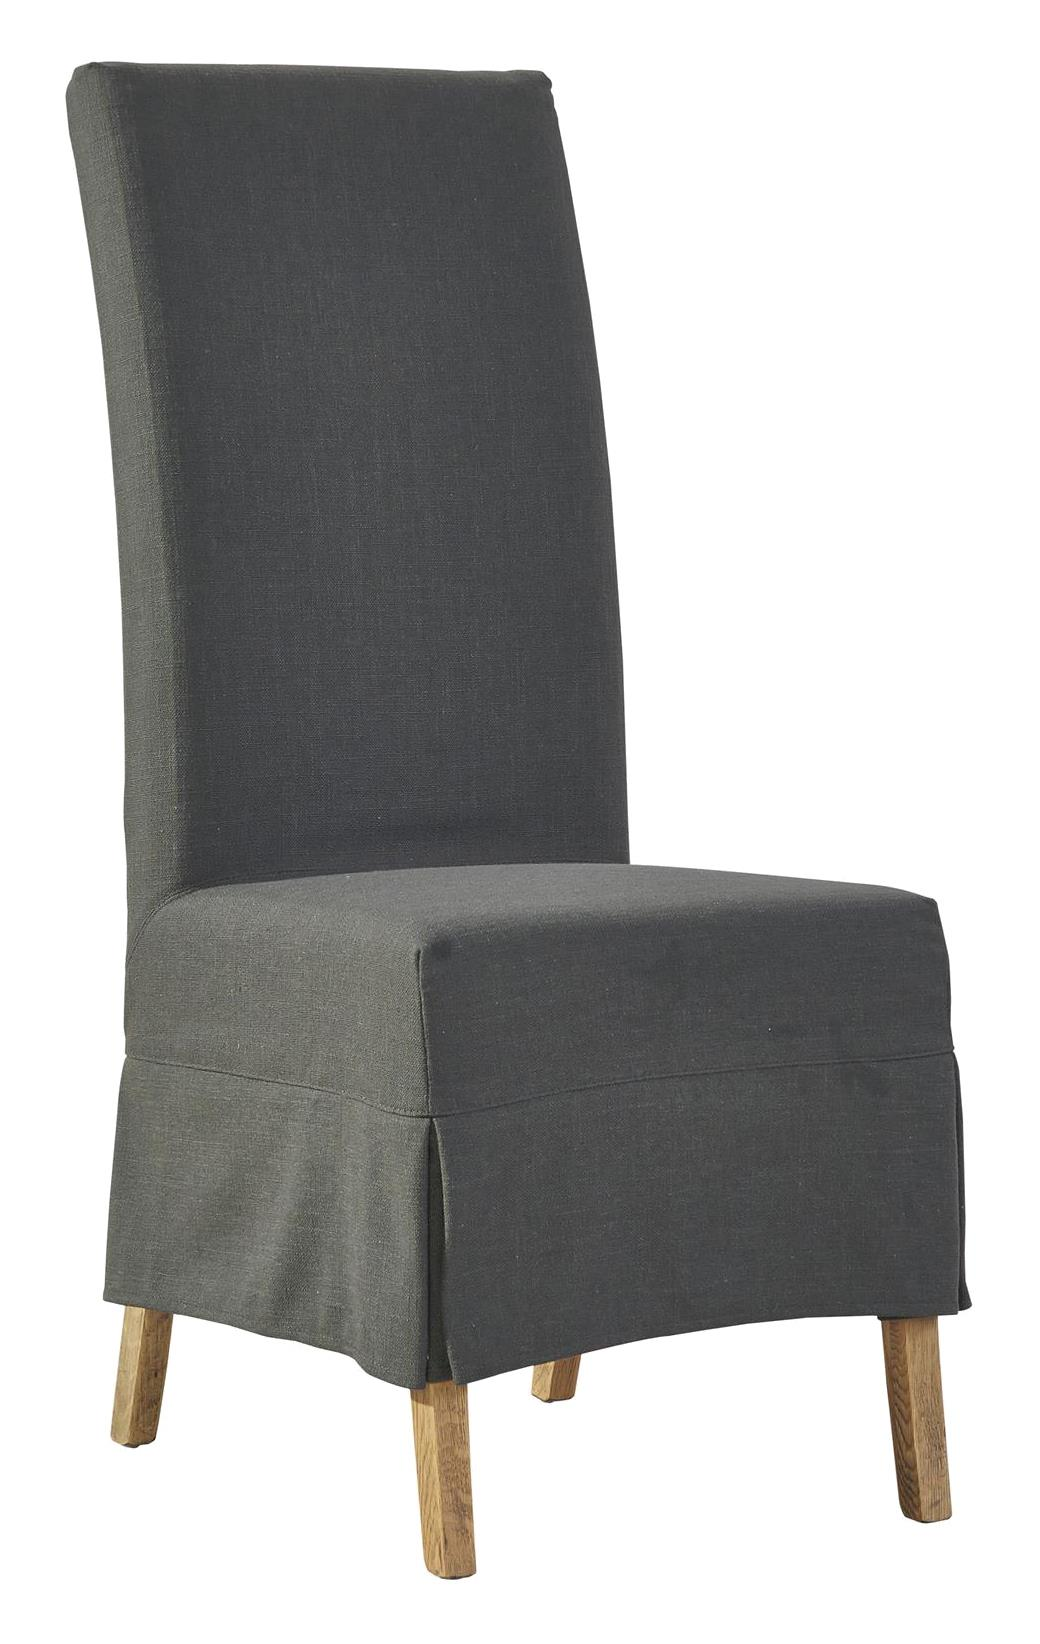 Furniture Classics Accents Linen Slip Covered Parsons Chair - Item Number: 70018S